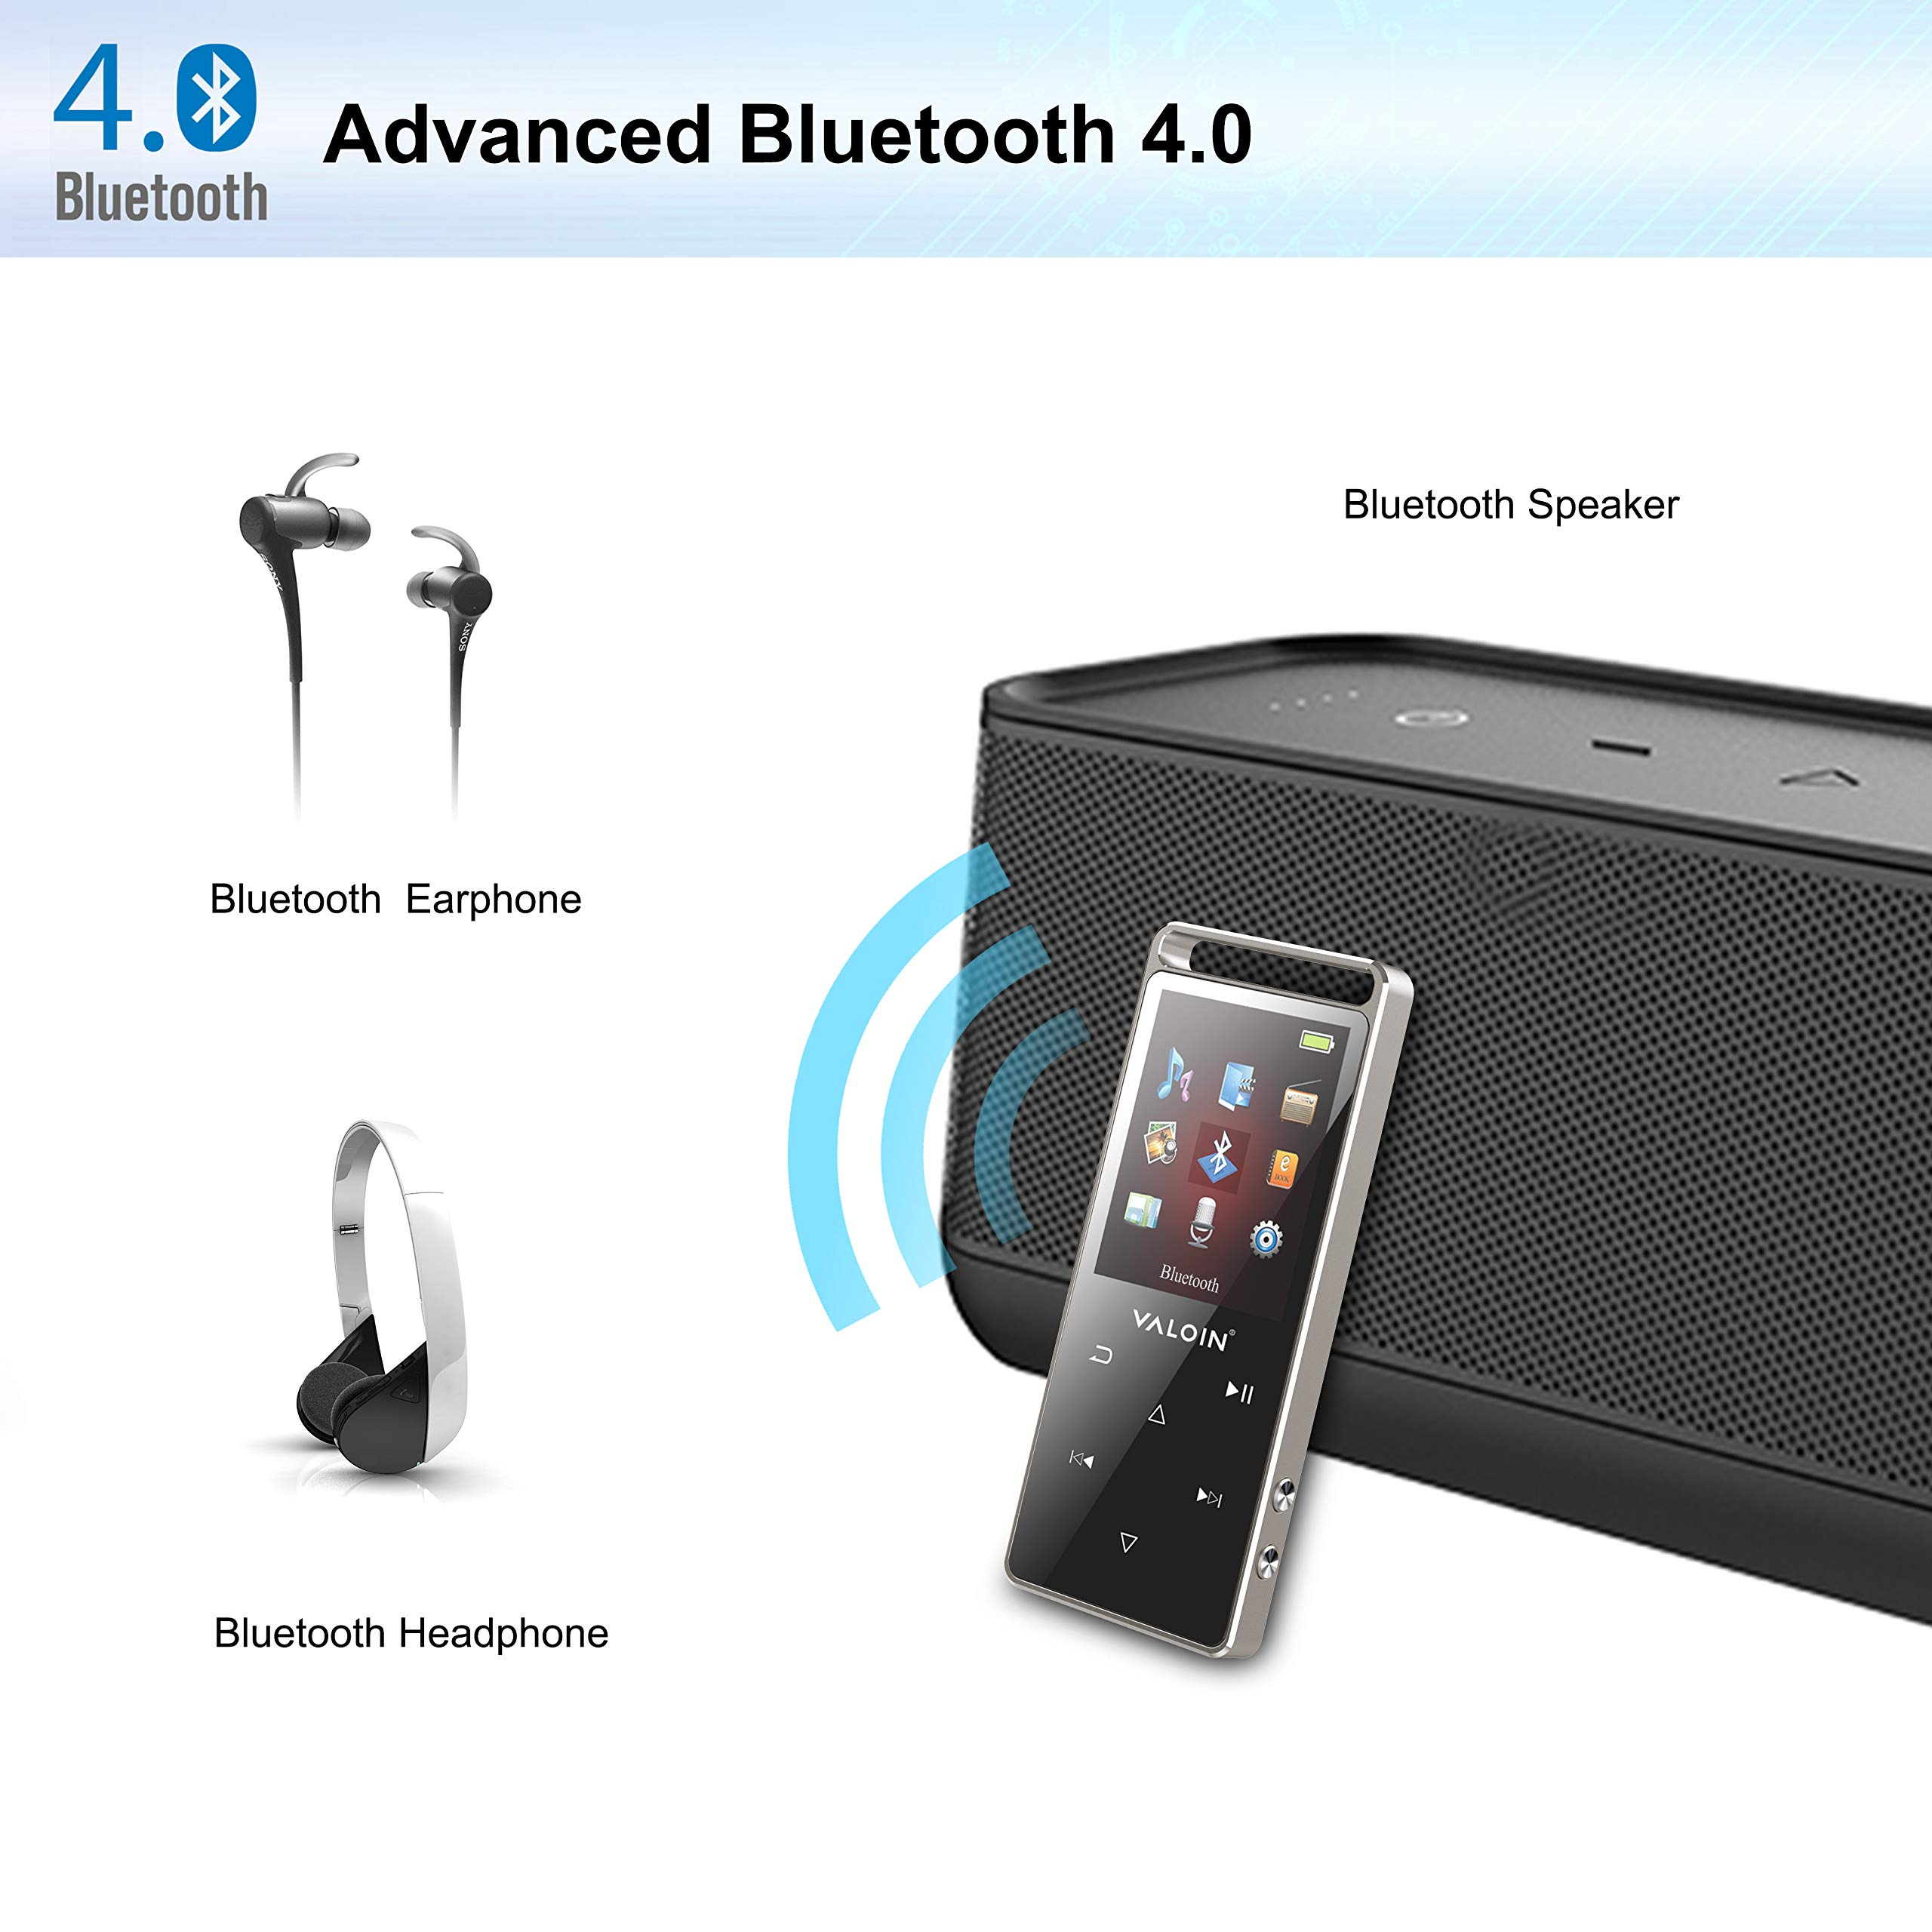 8Gb MP3 Player Advanced Bluetooth 4.0,2019 Lastest Digital Music Player with 1.8 Inch Screen Touch Button Support Video/EBook/FM Radio for Sport by Valoin (Image #3)